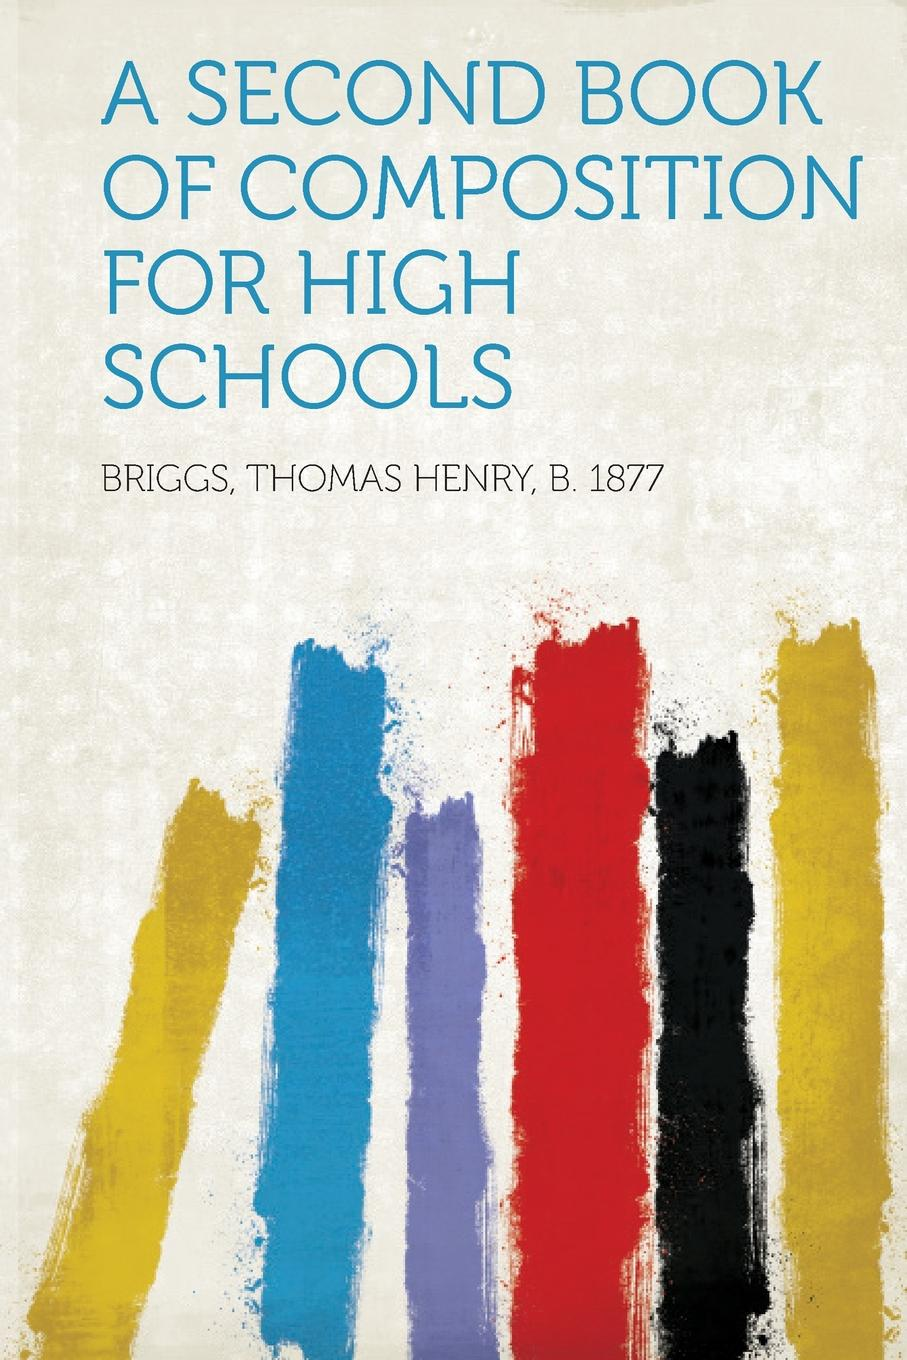 A Second Book of Composition for High Schools